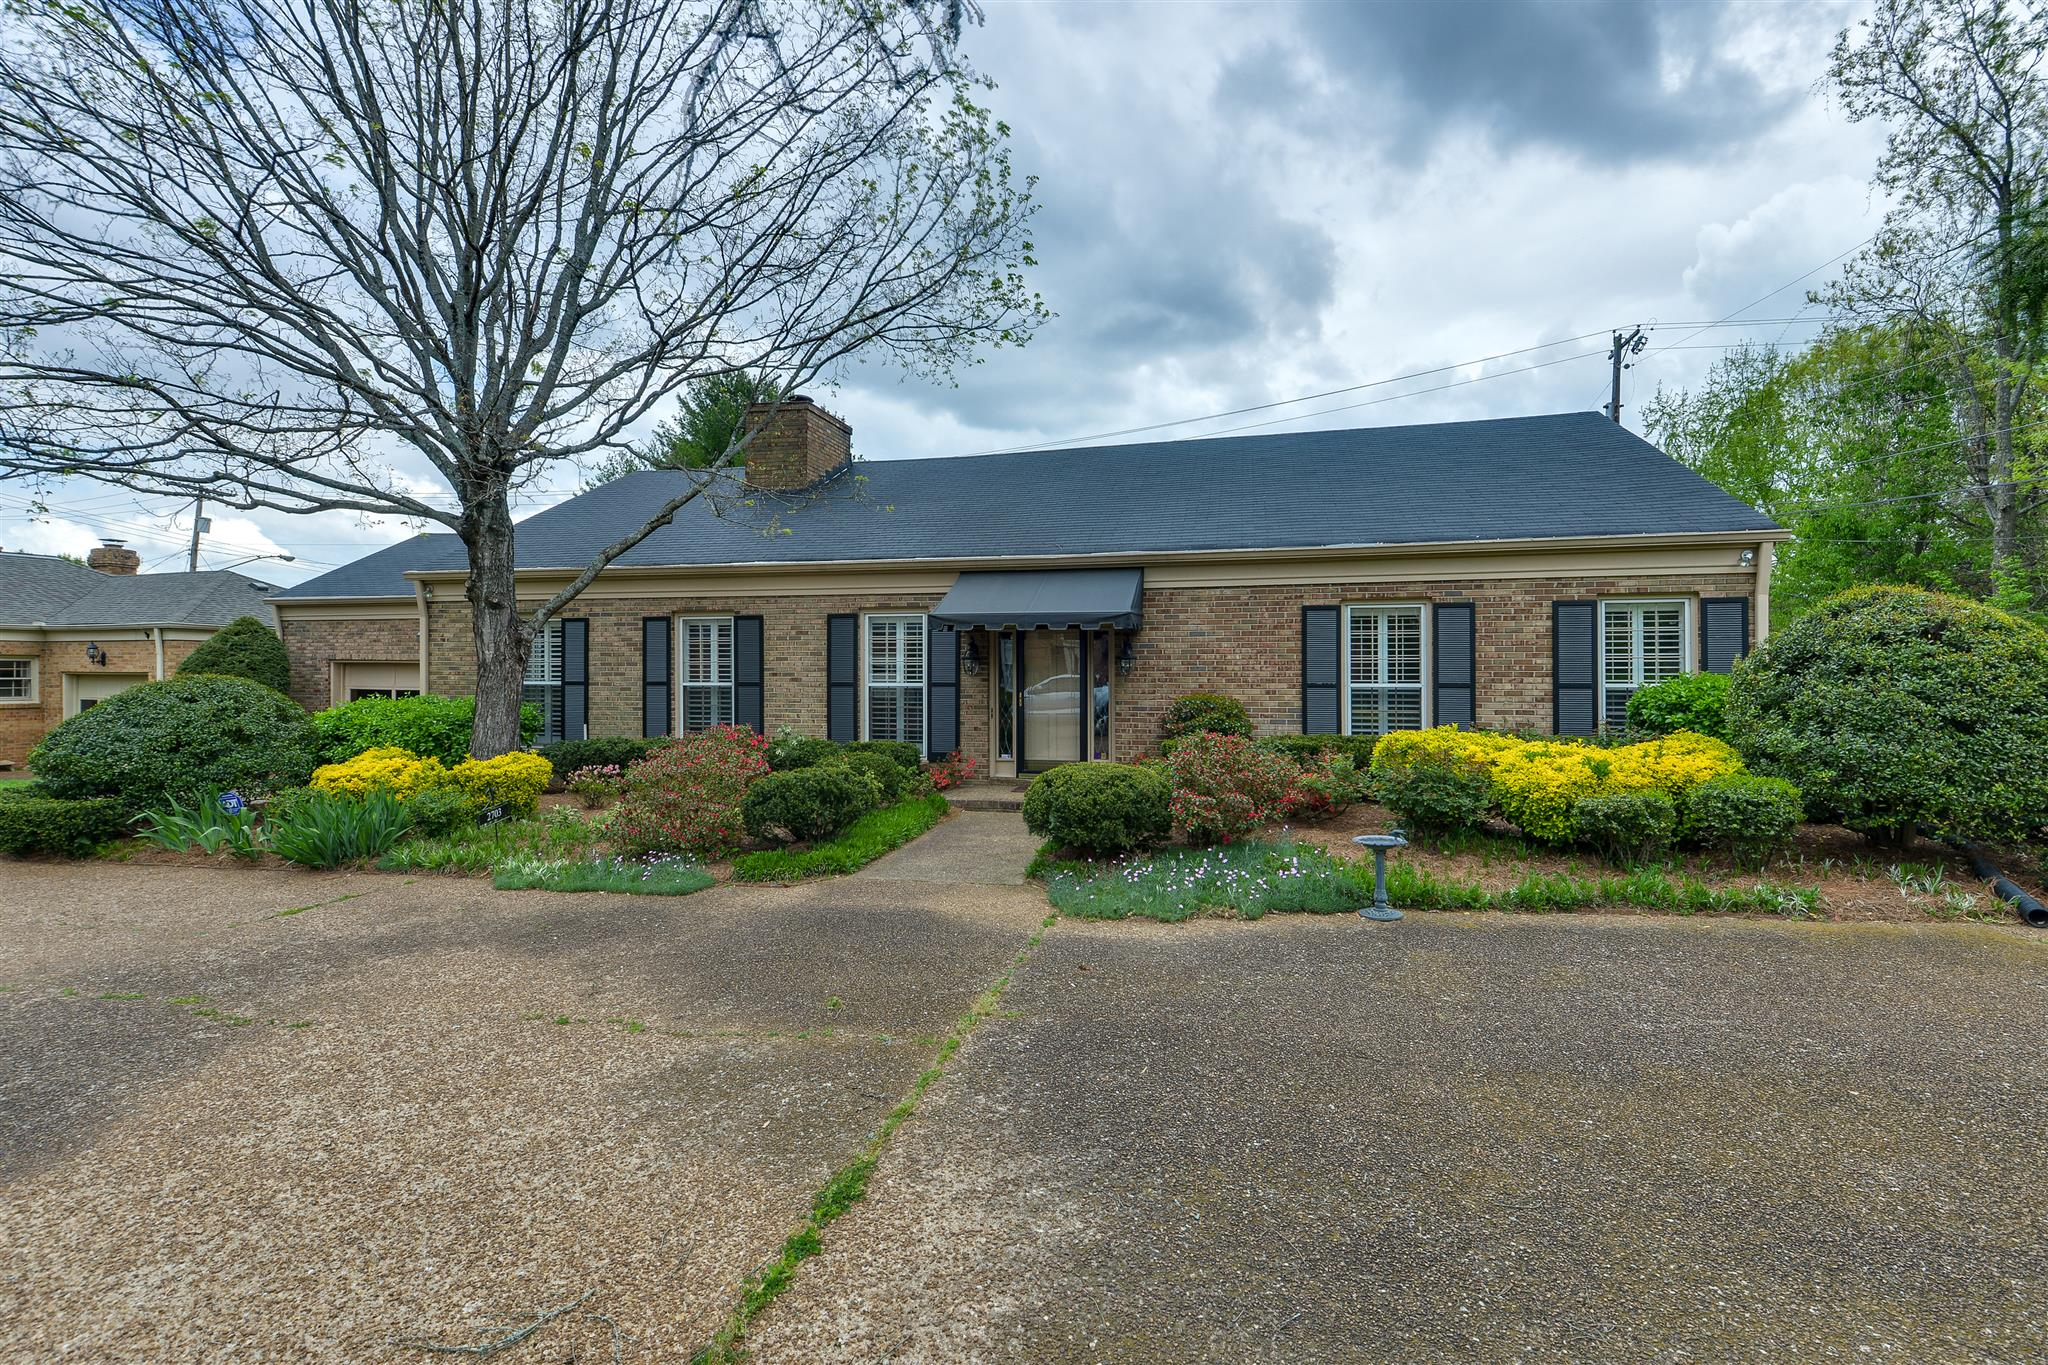 2703 Abbott Martin Rd, Forest Hills in Davidson County County, TN 37215 Home for Sale